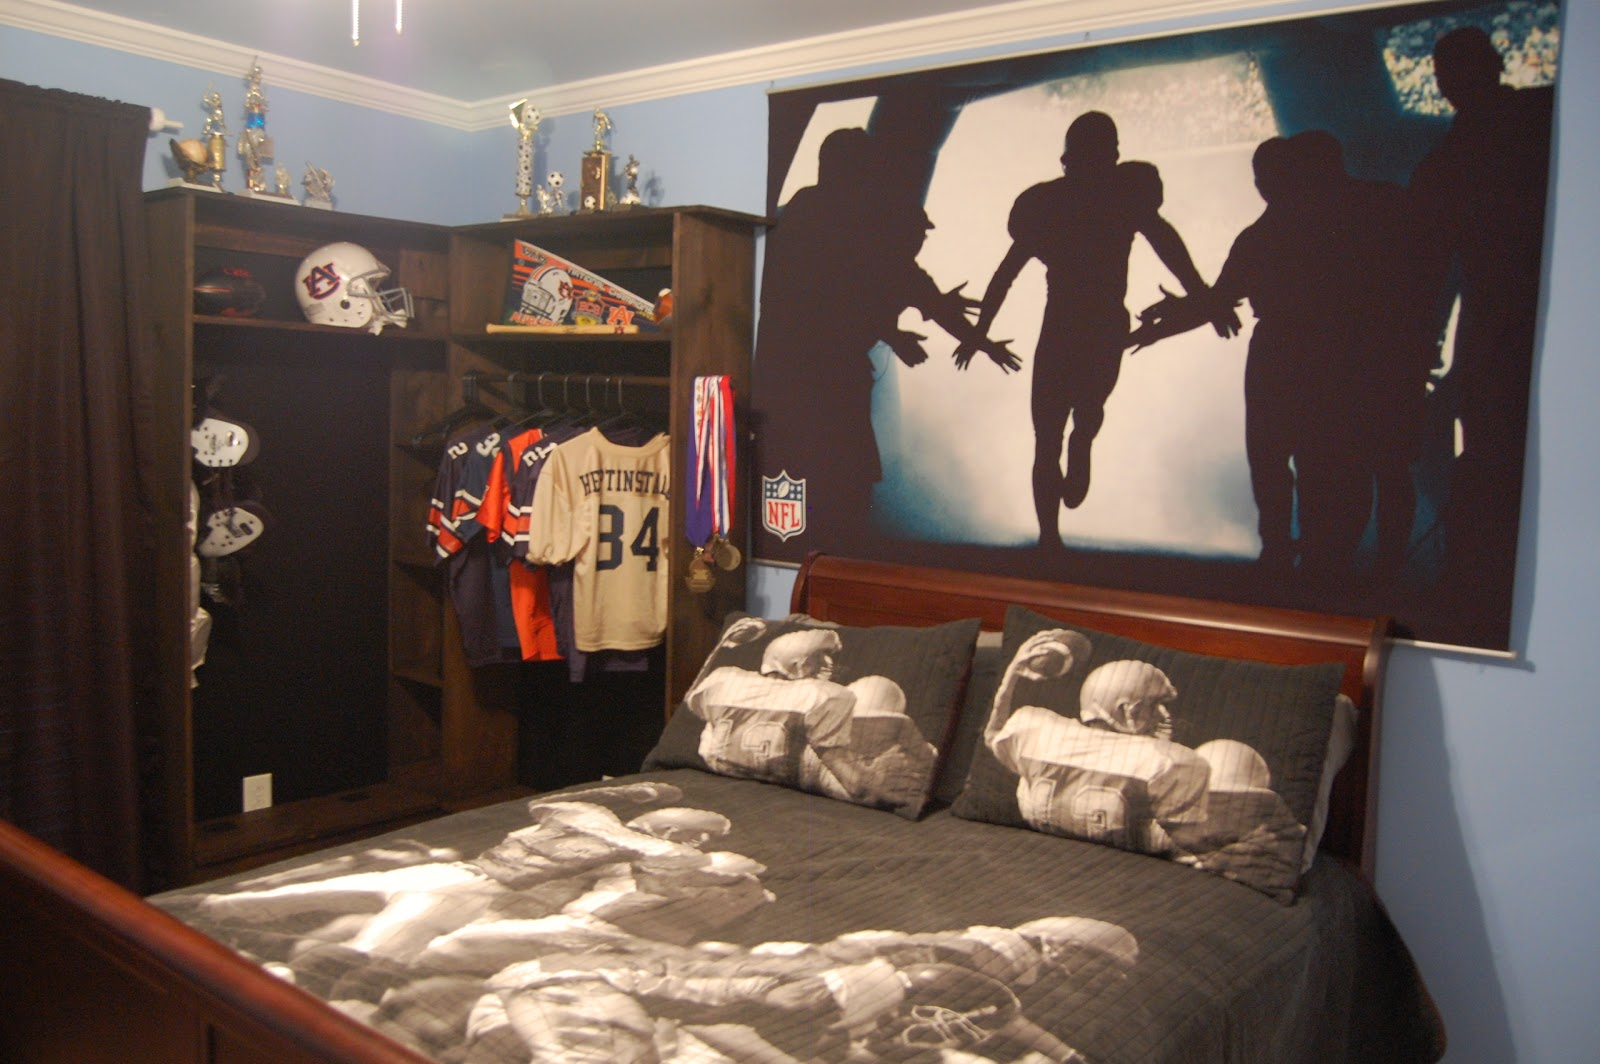 Teens Room Cool Boys Bedroom Ideas Teenage Small Bedroom: Snips Of Snails And Puppy Dog Tails: Best Bedroom For The